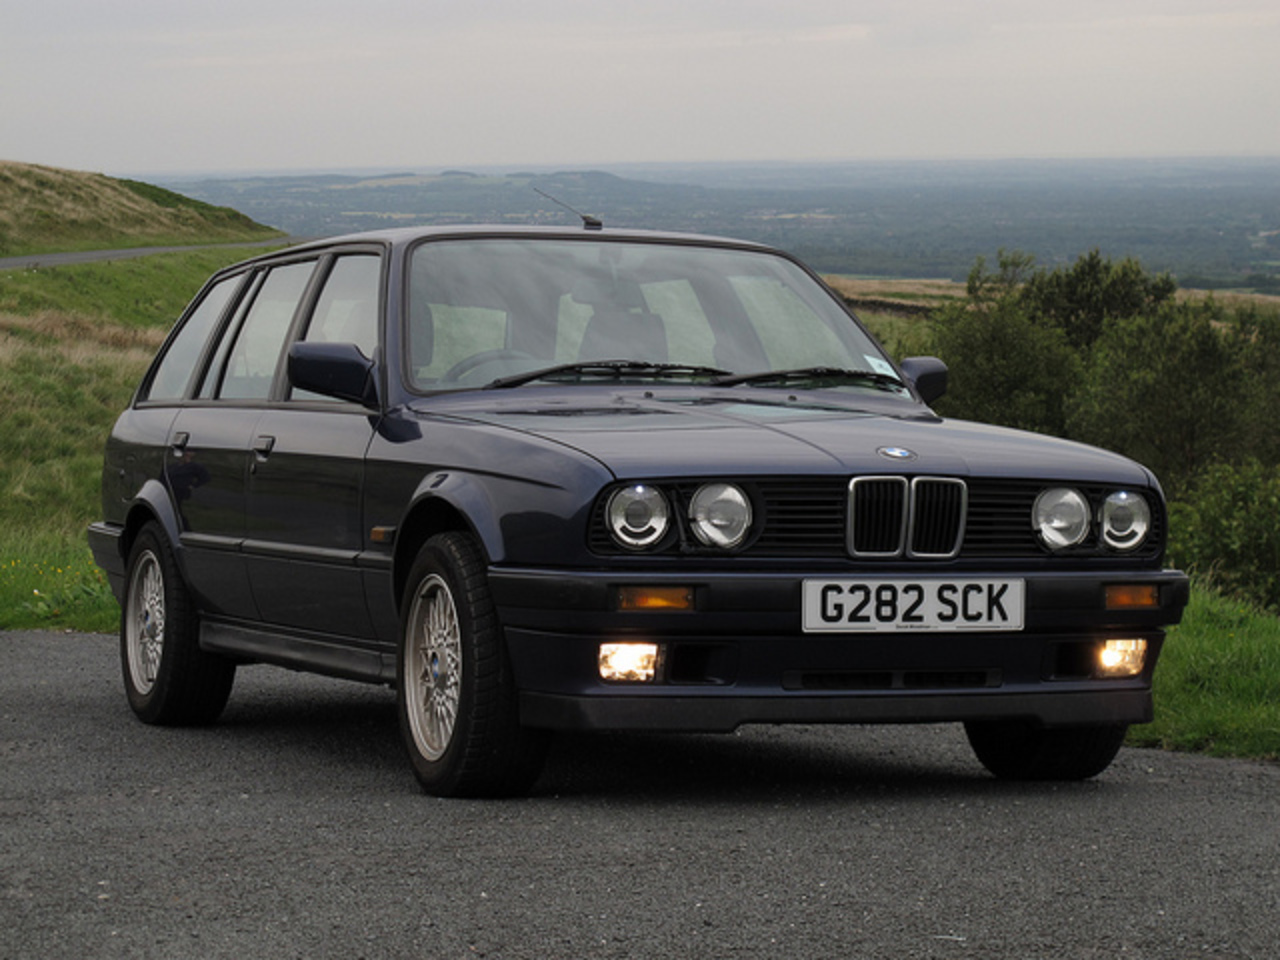 BMW 3 series Touring (e30) 1 | Flickr - Photo Sharing!